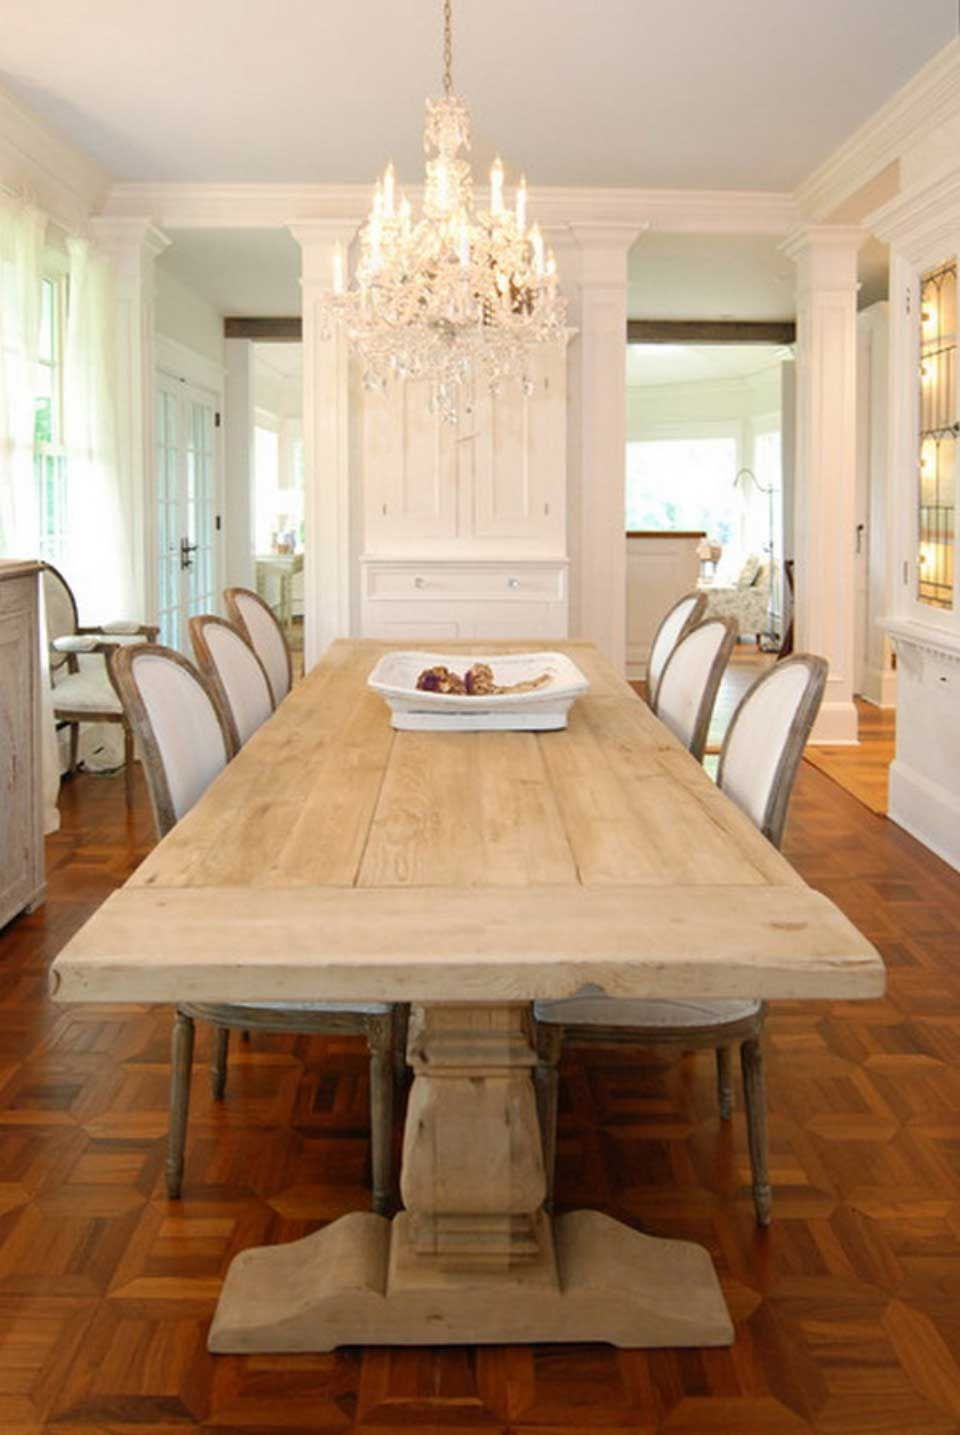 Rustic Dining Room Ideas For Small House With Expanding Teak Wooden Dinner Table Design And Entrancing Beige White Chairs Idea Also Classy Dark Wooden Floor Des Chic Dining Room Farmhouse Dining